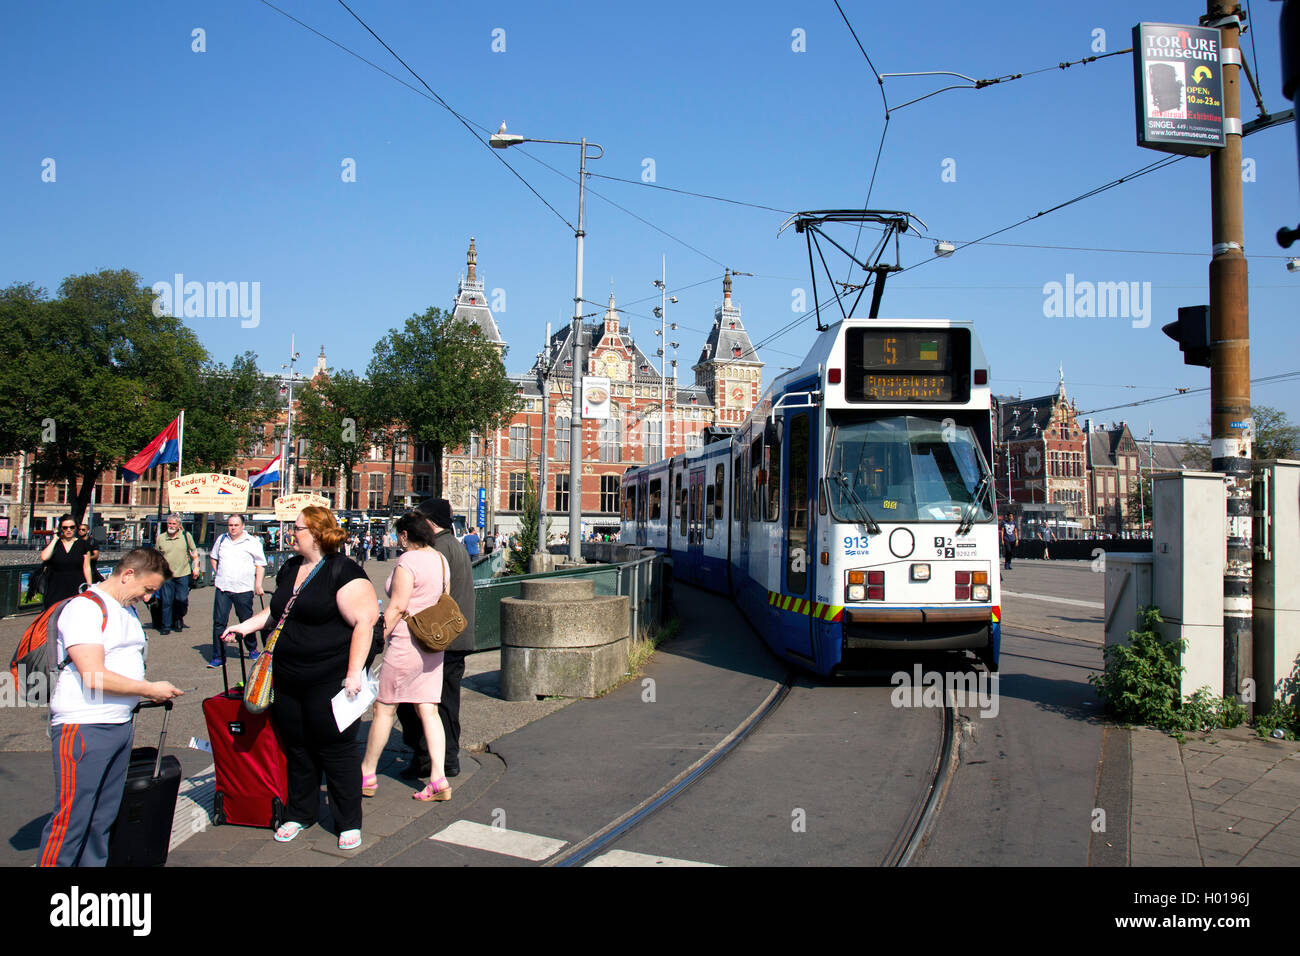 A Tram outside Amsterdam Centraal Station - Stock Image